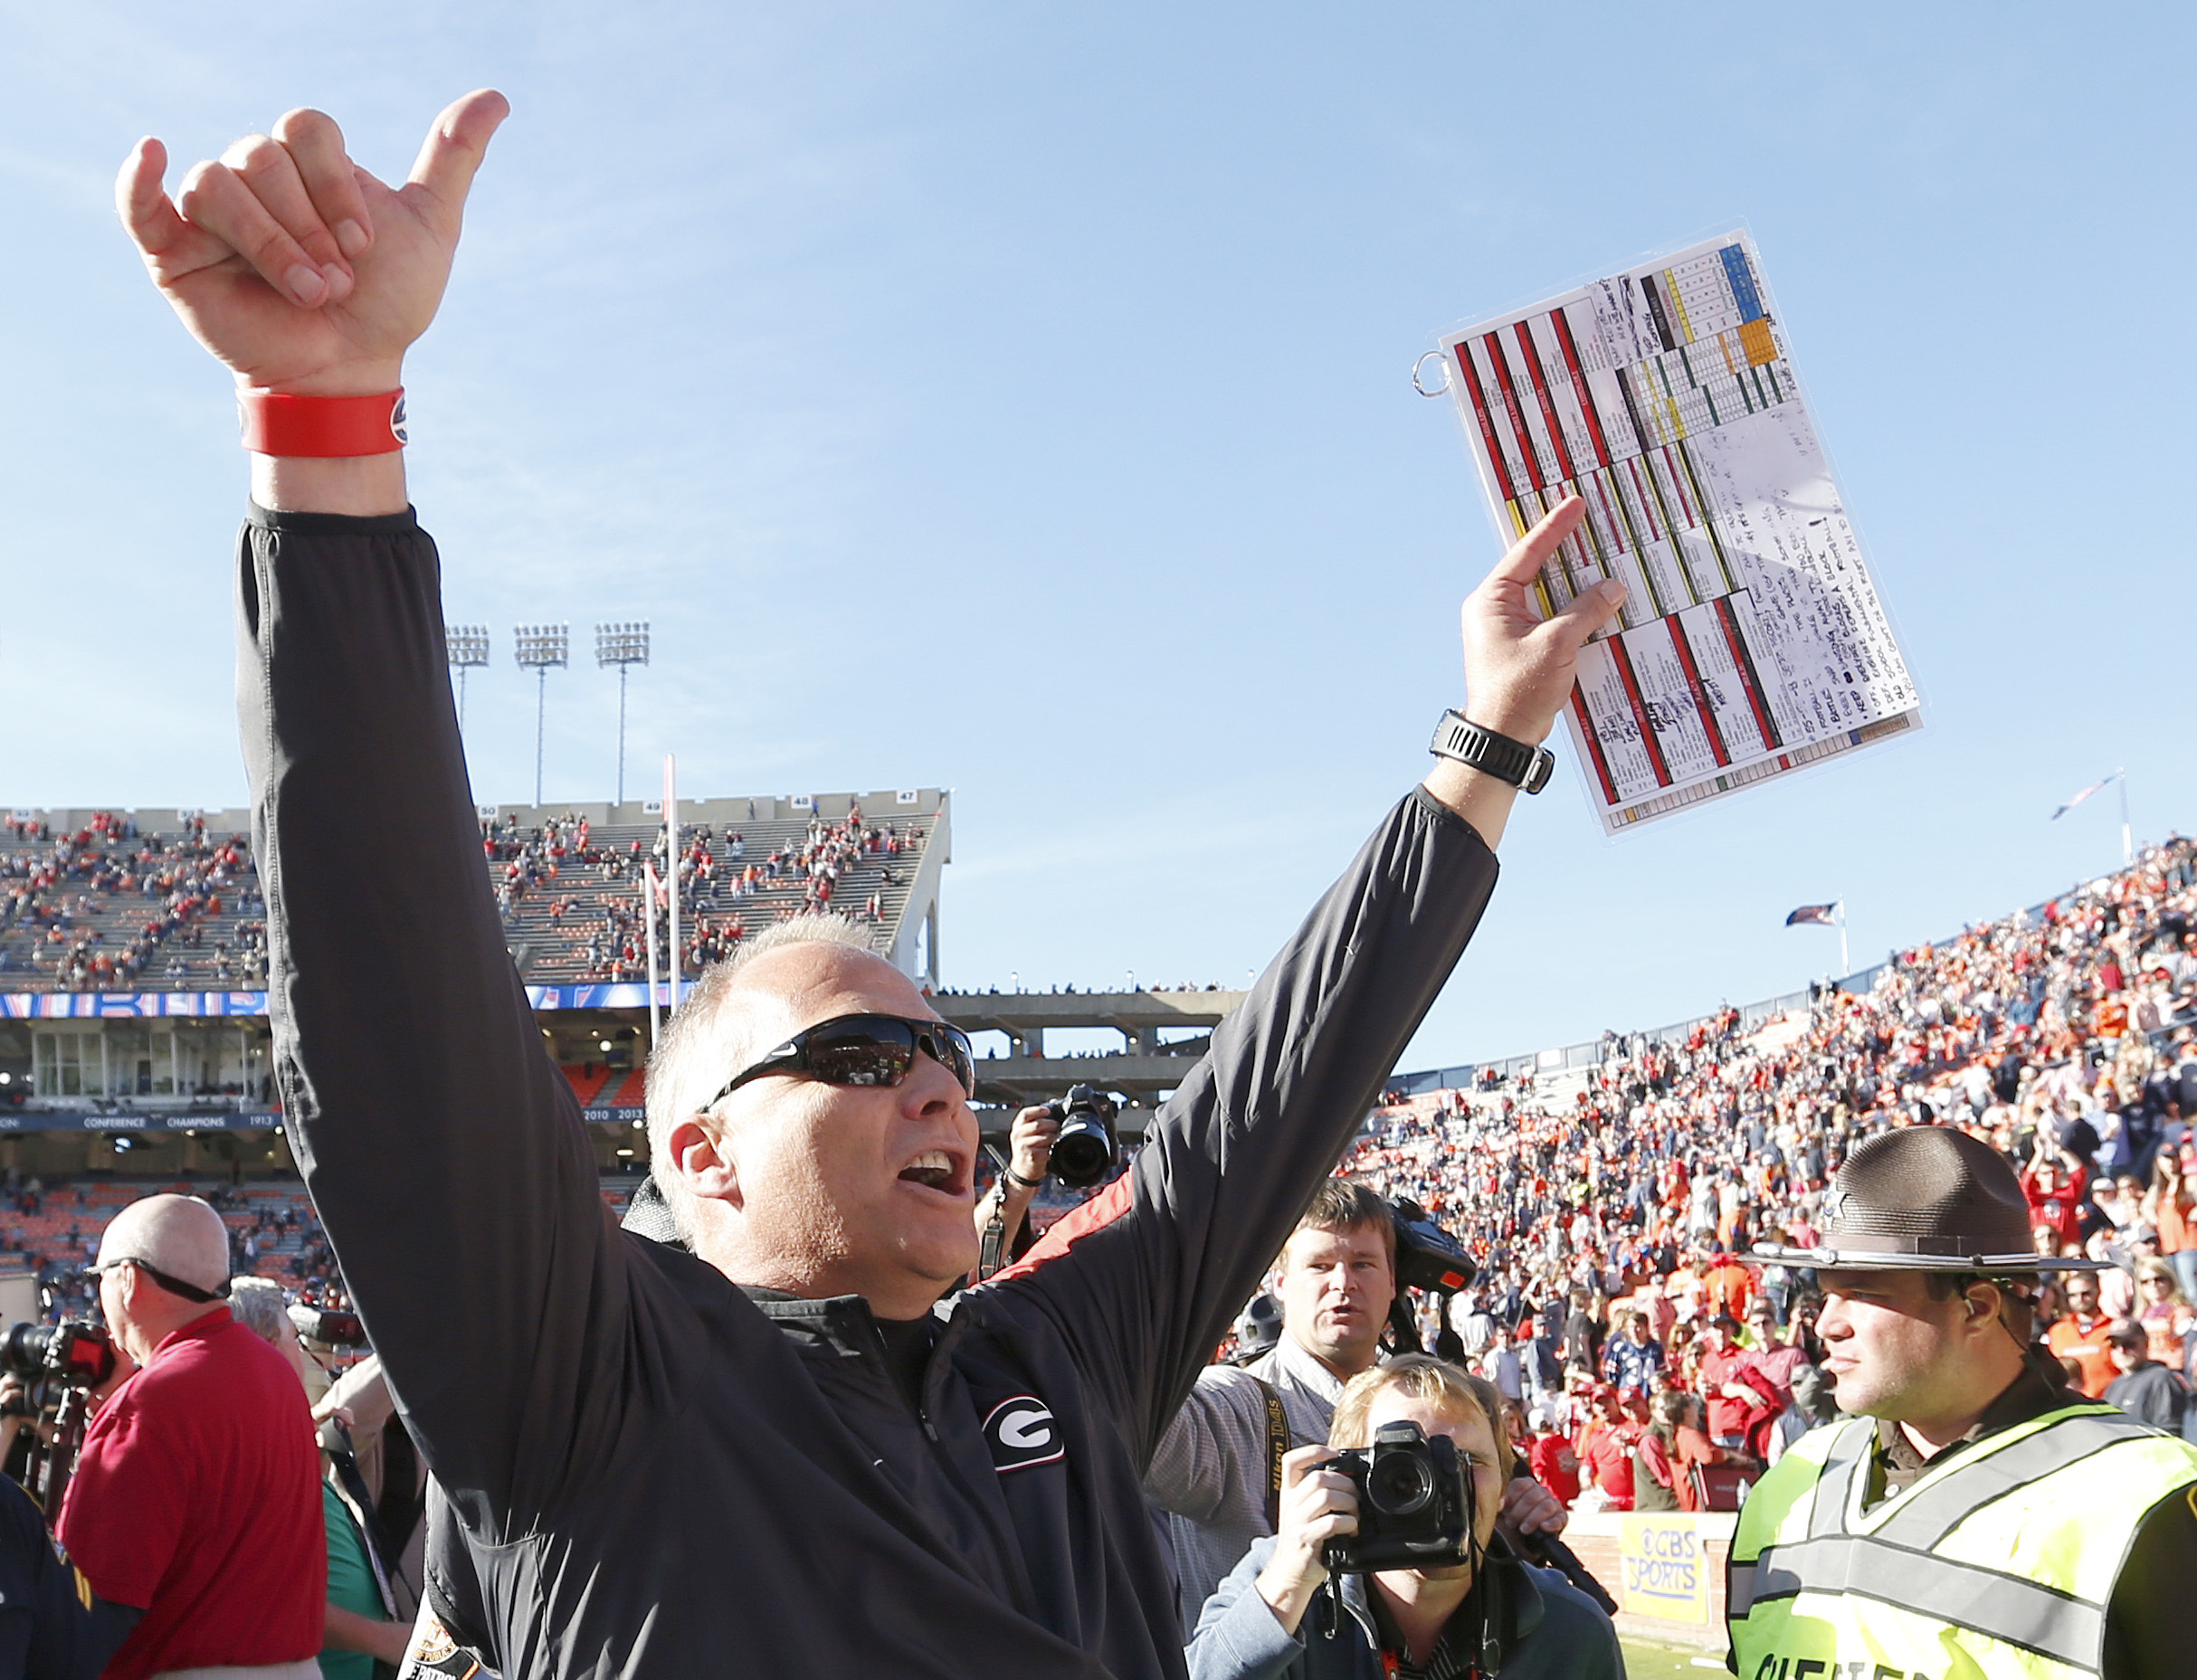 Georgia head coach Mark Richt celebrates as he walks off the field after they defeated Auburn 20-13 in an NCAA football game, Saturday, Nov. 14, 2015, in Auburn, Ala. (AP Photo/Butch Dill)